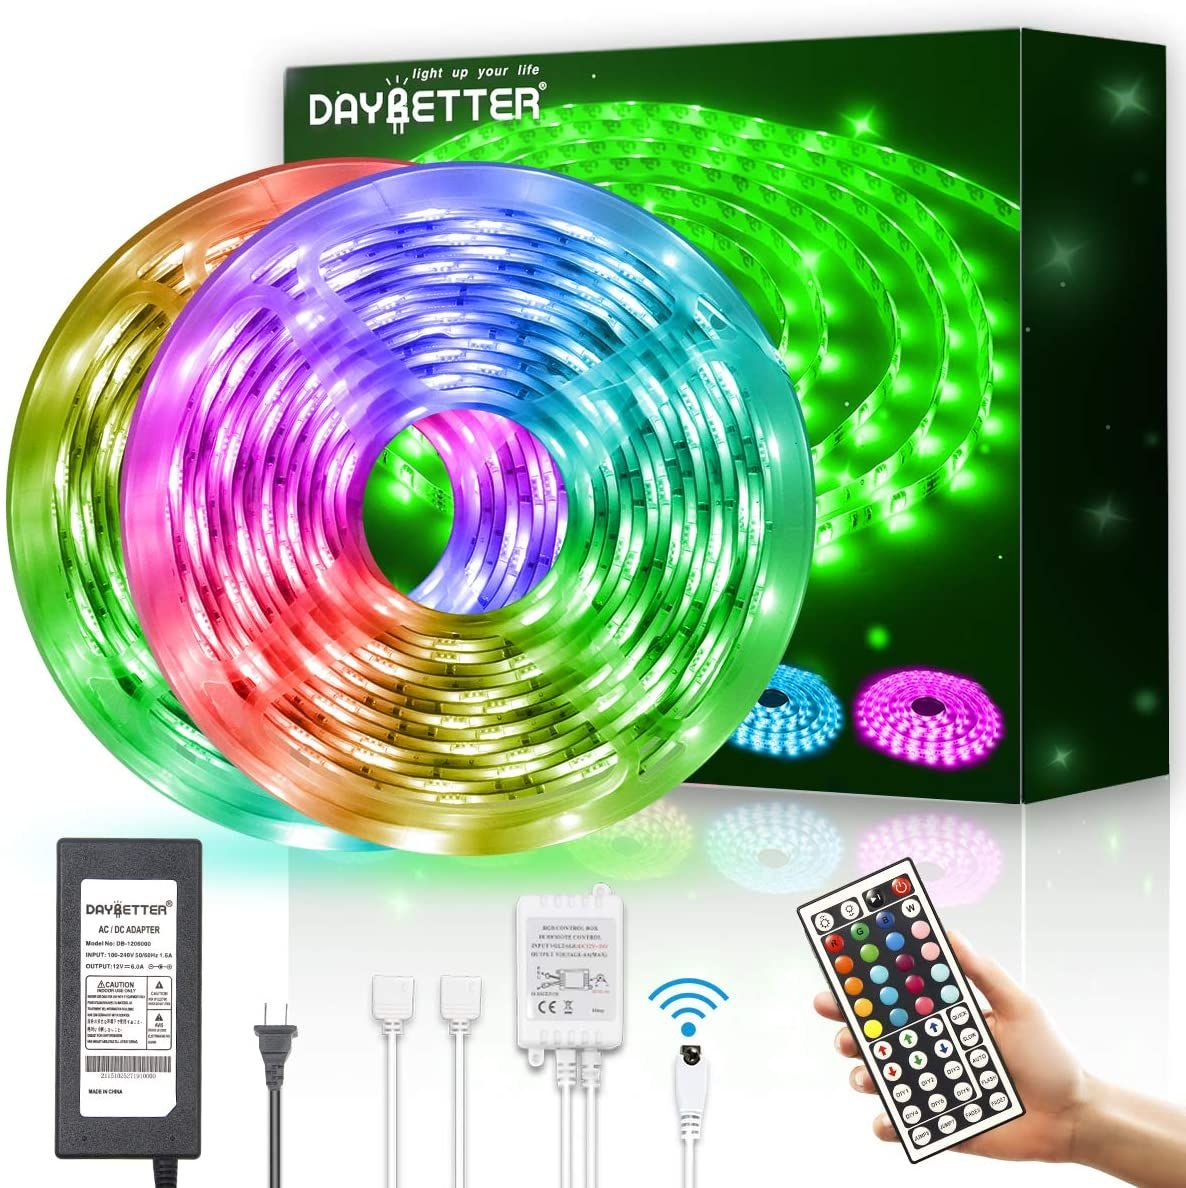 Daybetter Led Strip Lights Waterproof 600leds 32 8ft 10m Flexible Color Change Rgb Smd 5050 With 44 In 2020 Led Strip Lighting Strip Lighting Flexible Led Strip Lights